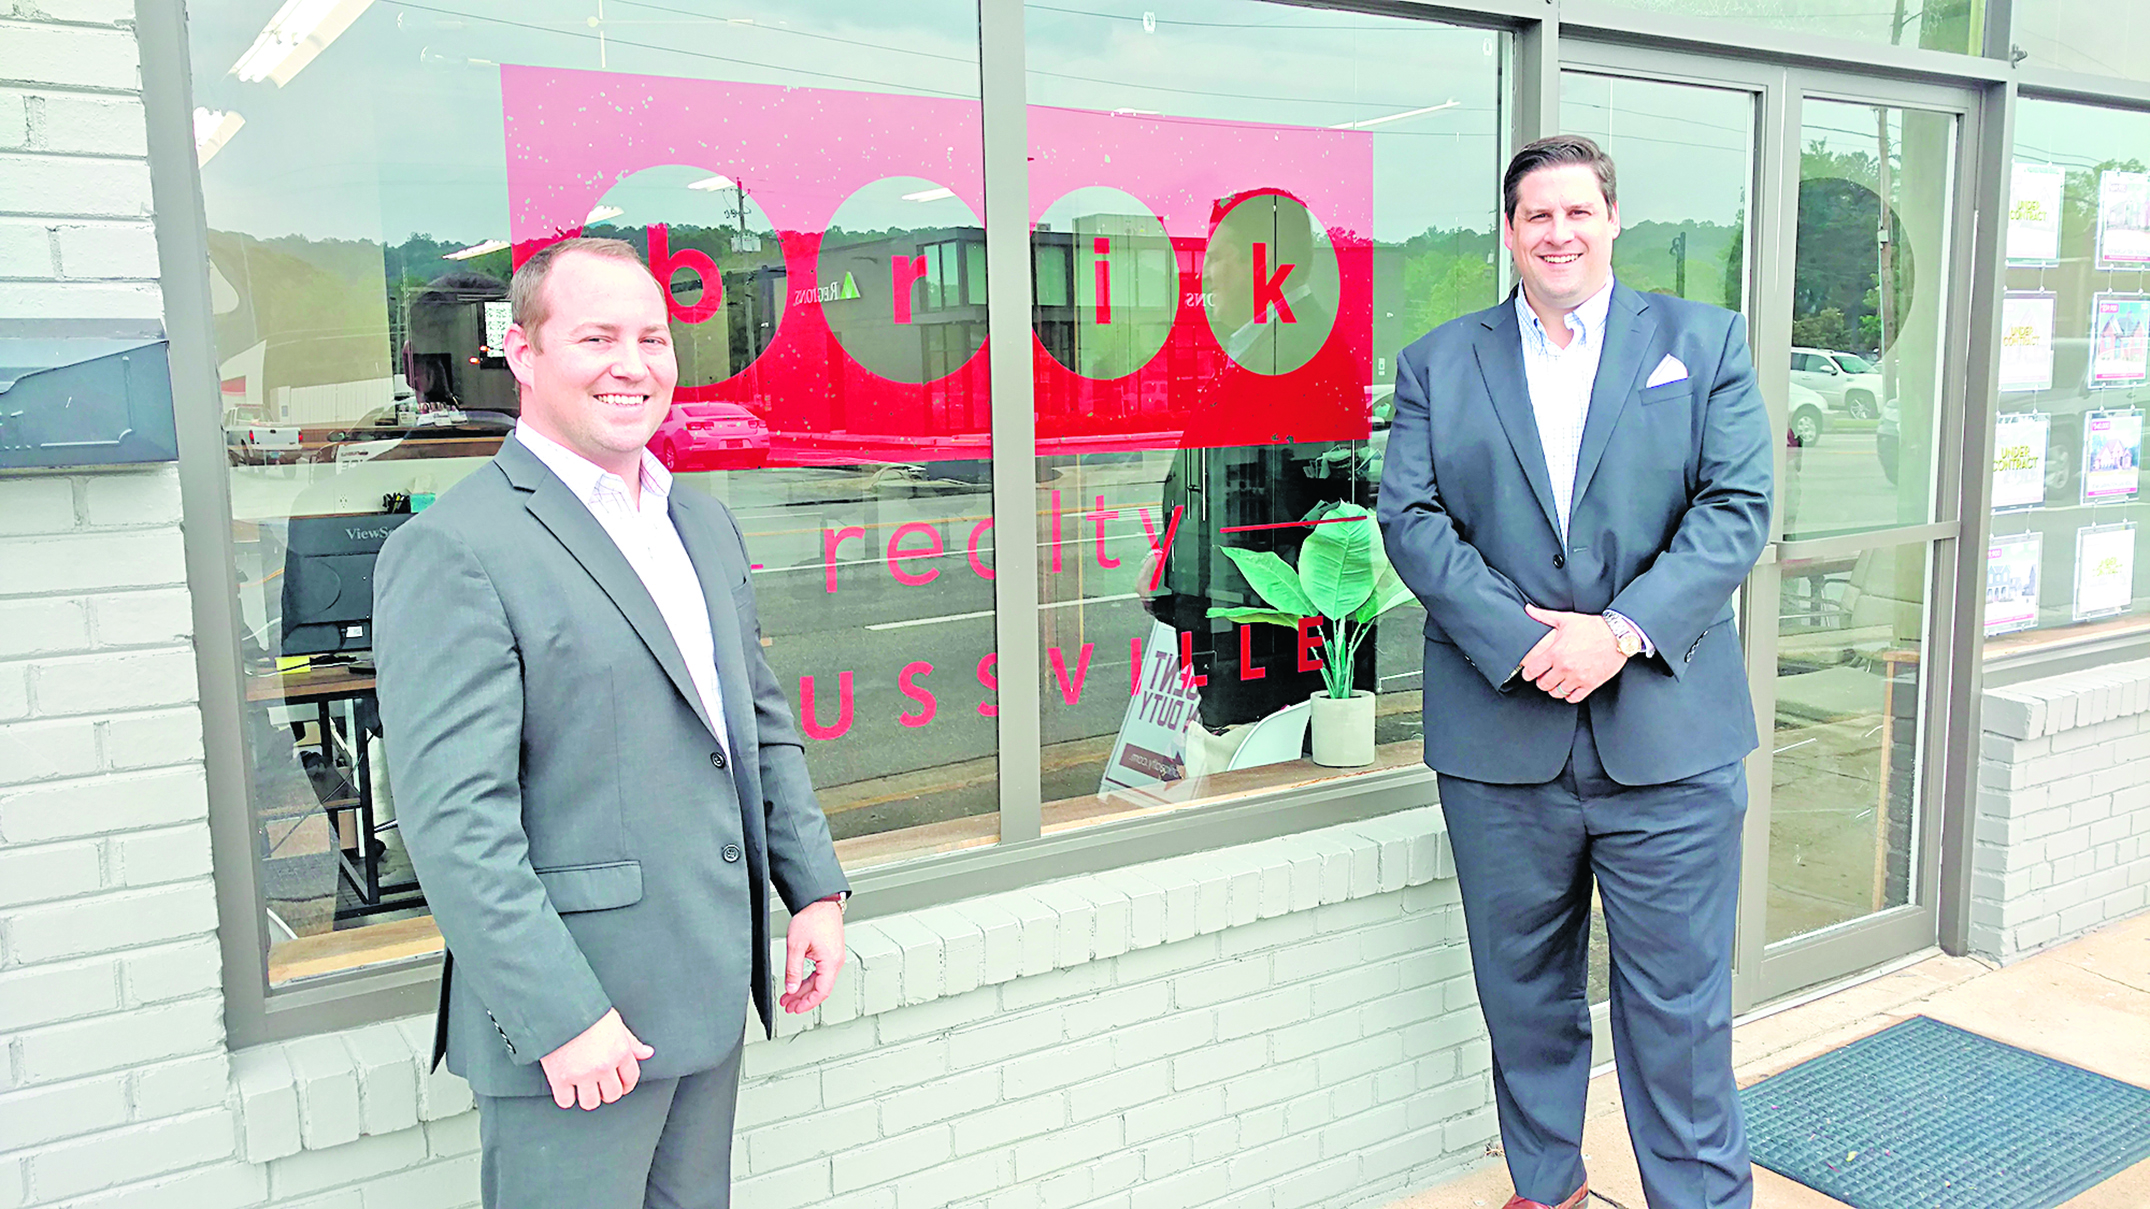 Community focus, new ideas take Brik Realty to the top of the markets in Trussville, surrounding areas